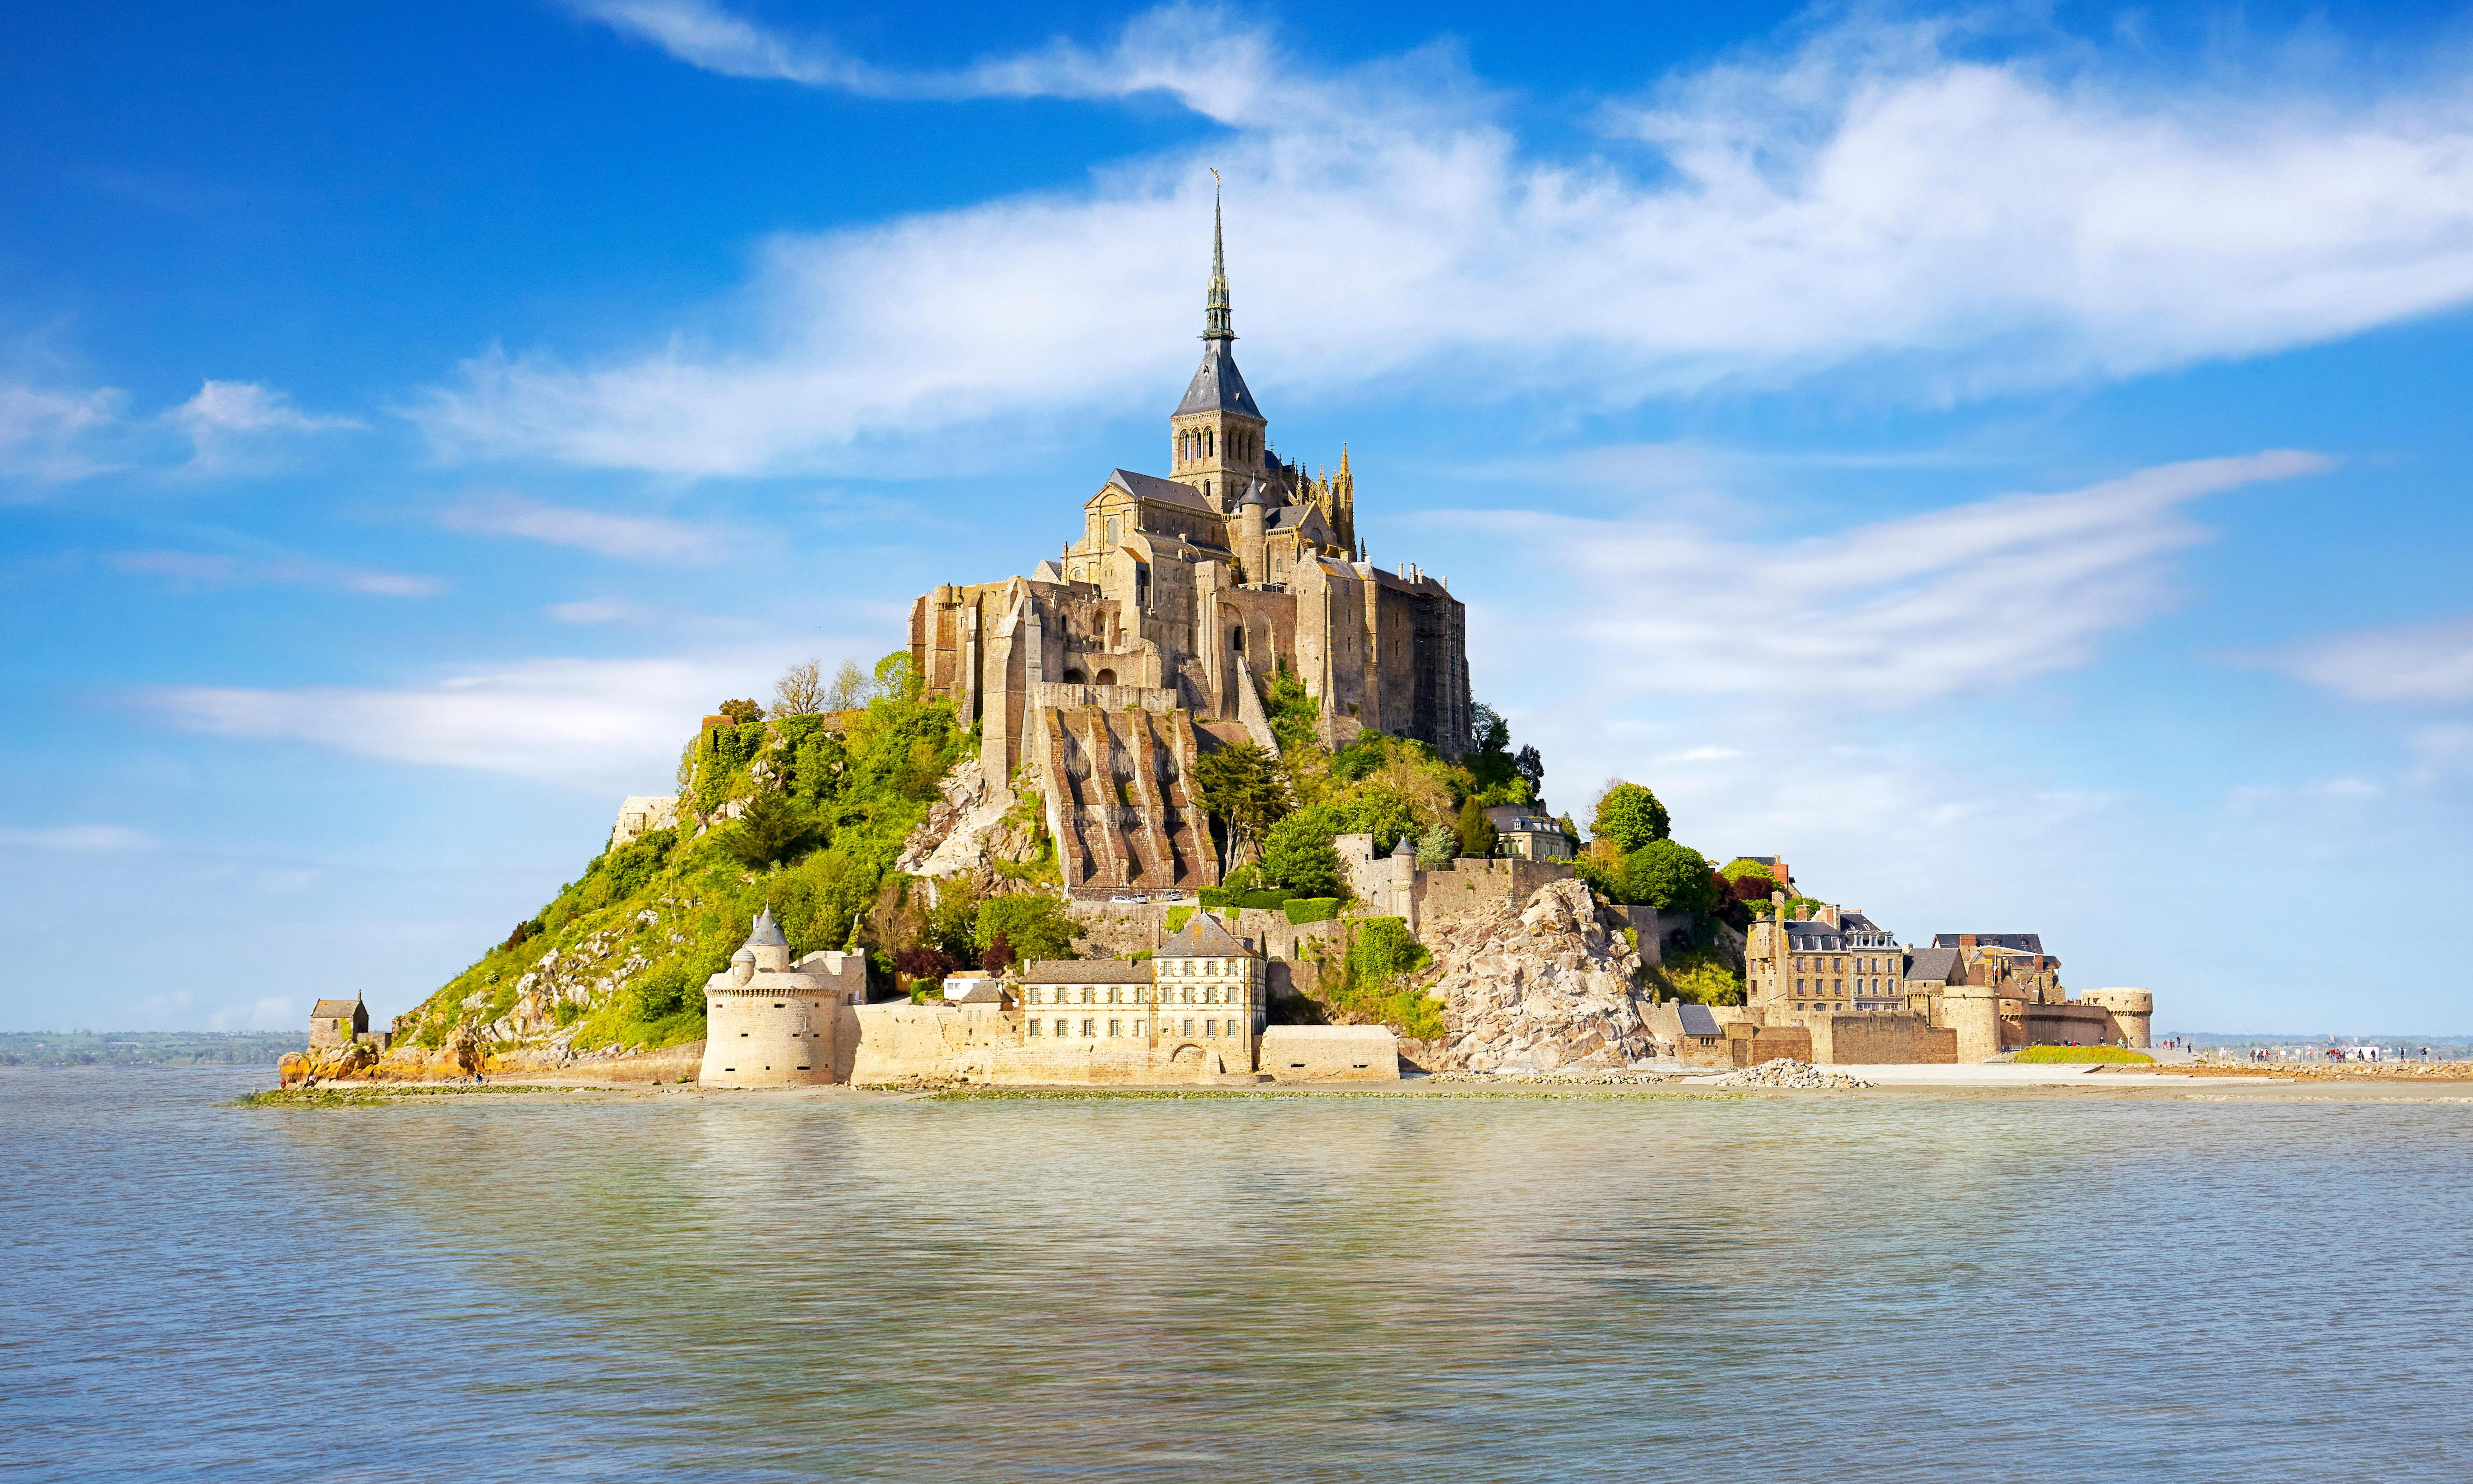 Norman conquest: cycling from Paris to Mont Saint-Michel